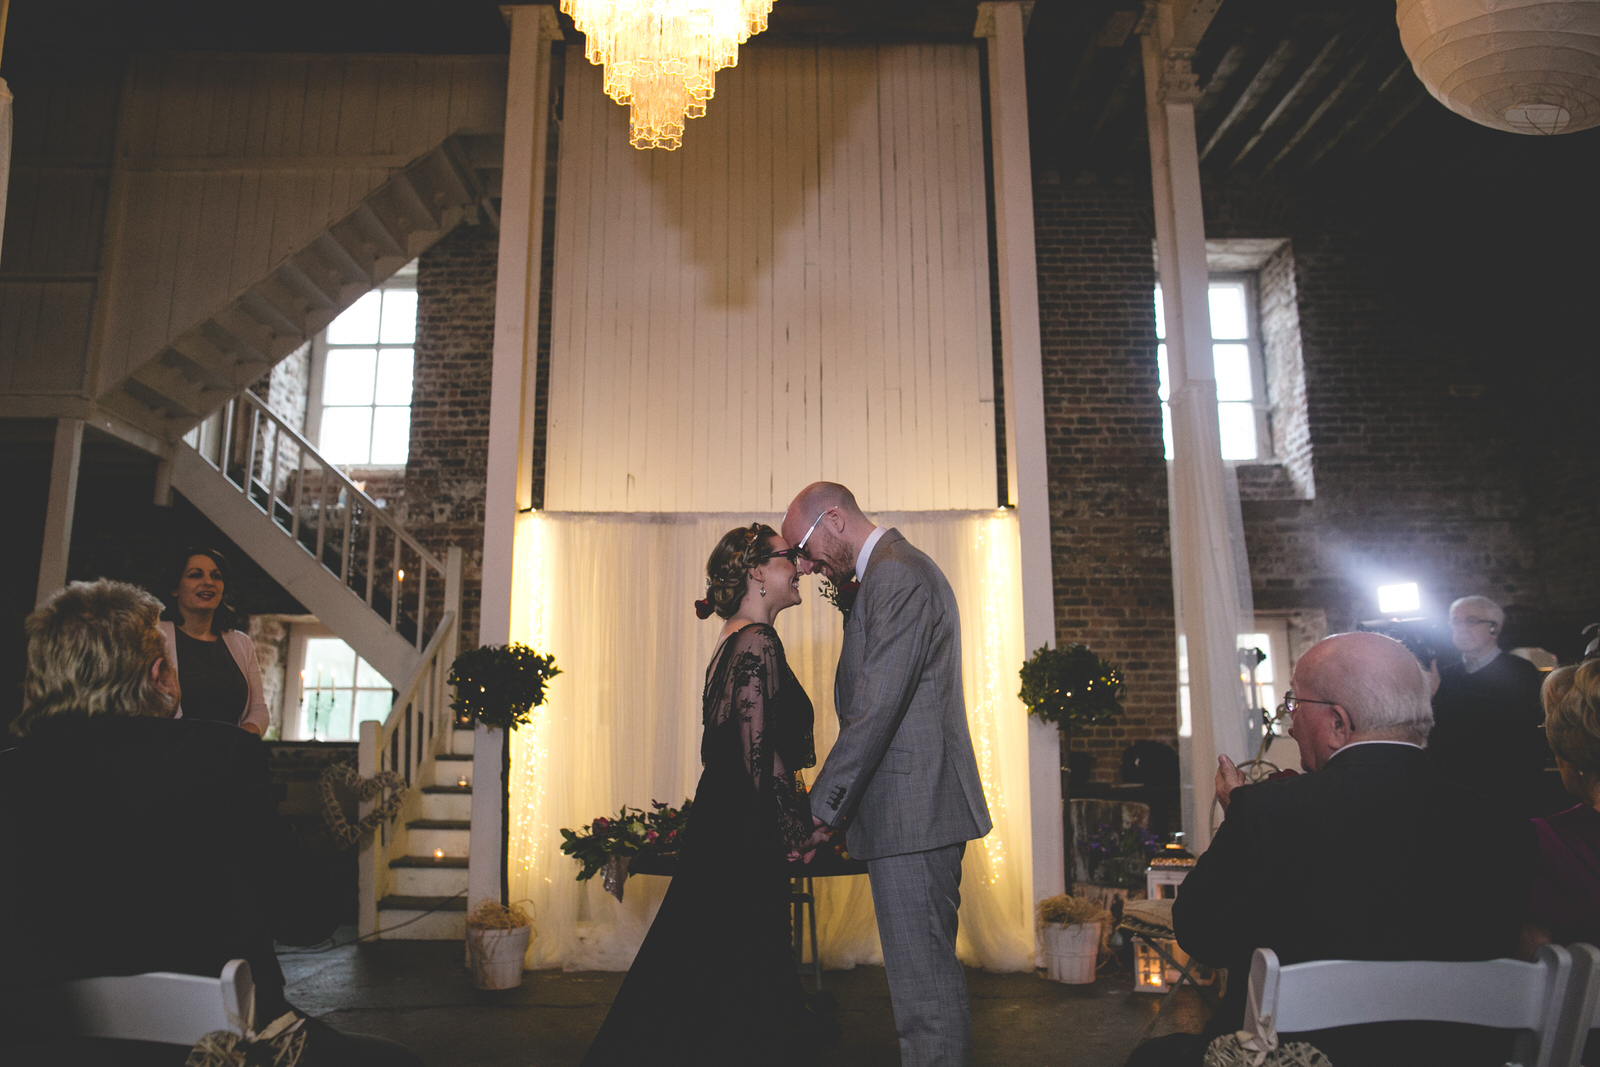 Rustic humanist wedding ceremony at the old mill in the Millhouse